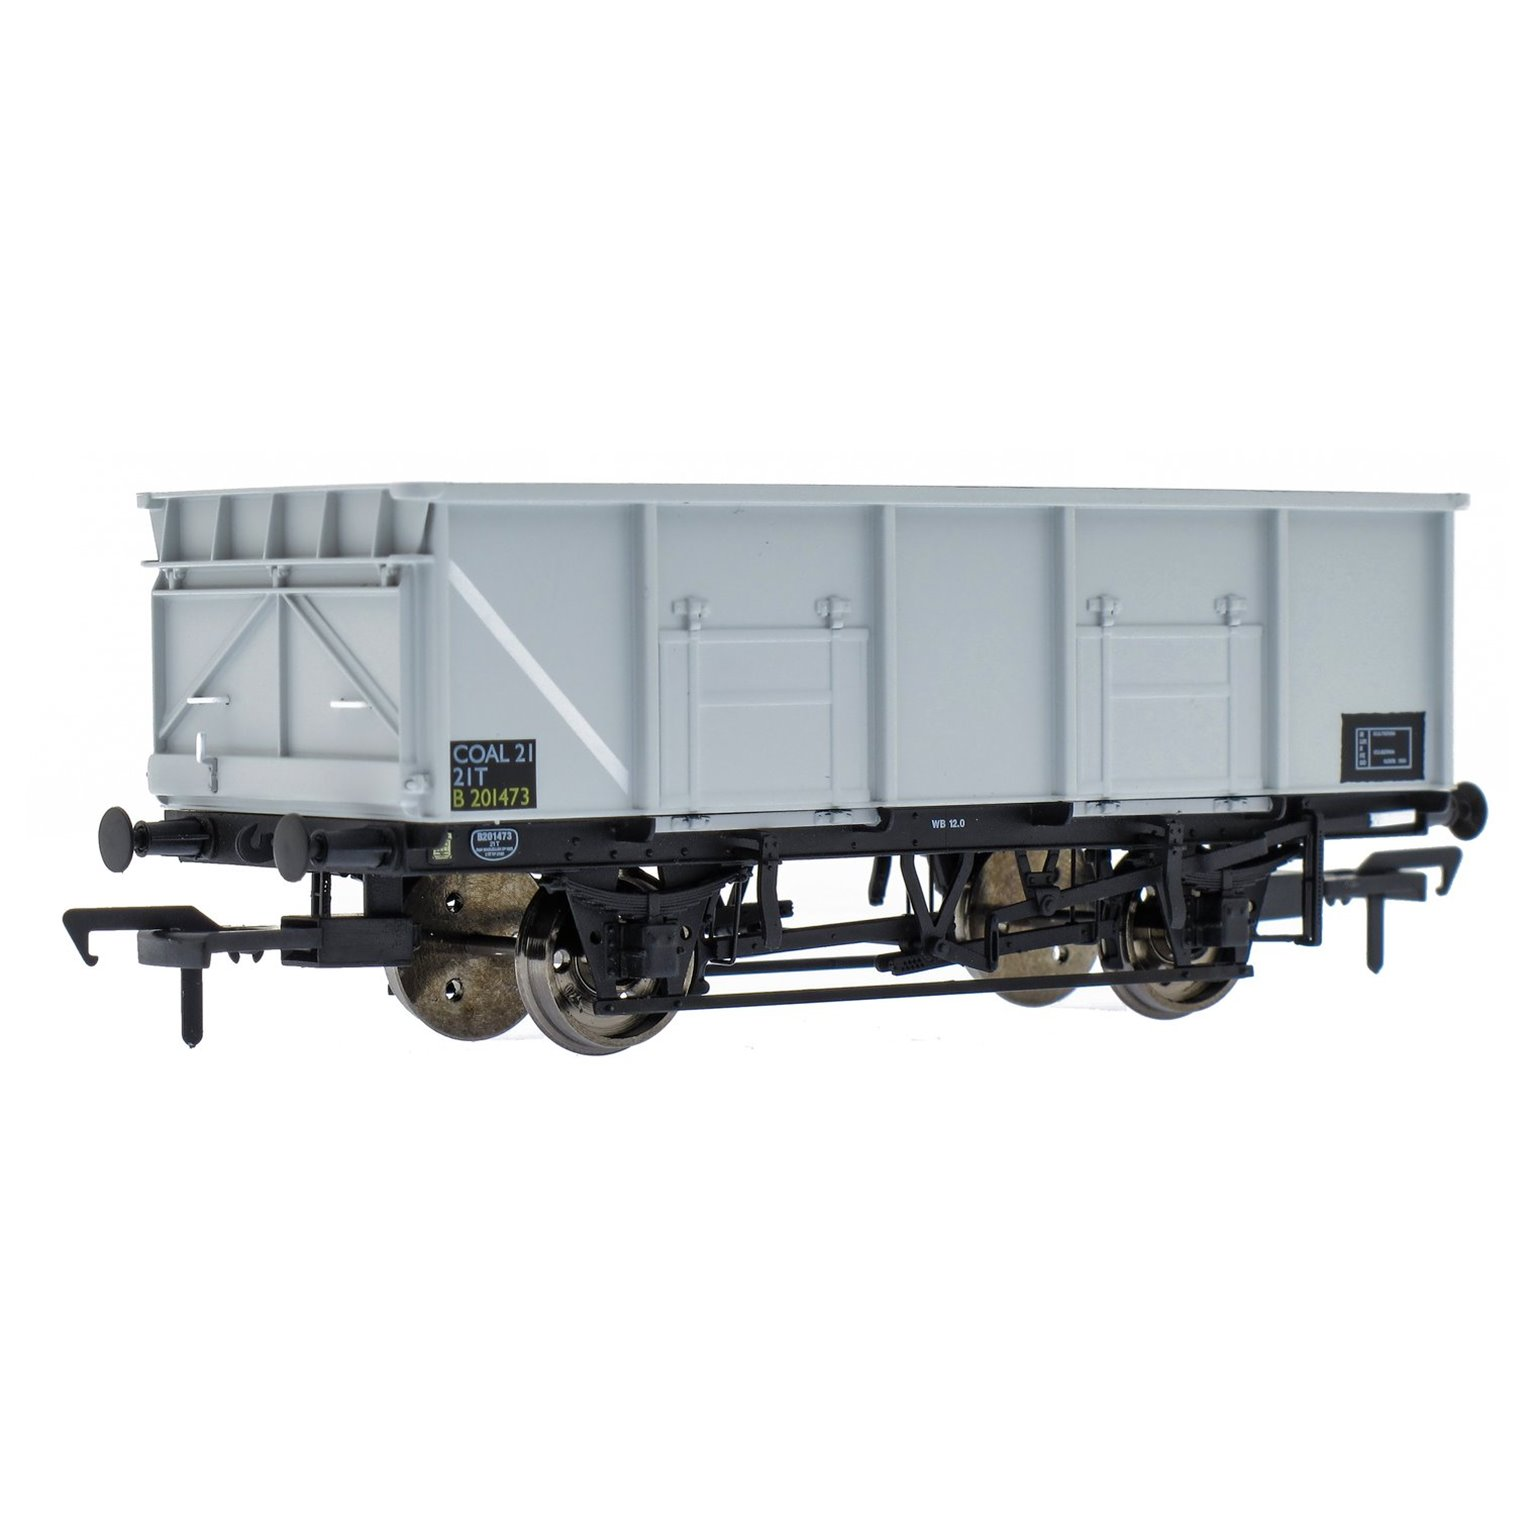 BR 21T COAL21 / MDO Mineral Wagon Triple Pack - Grey pre TOPS- Pack C